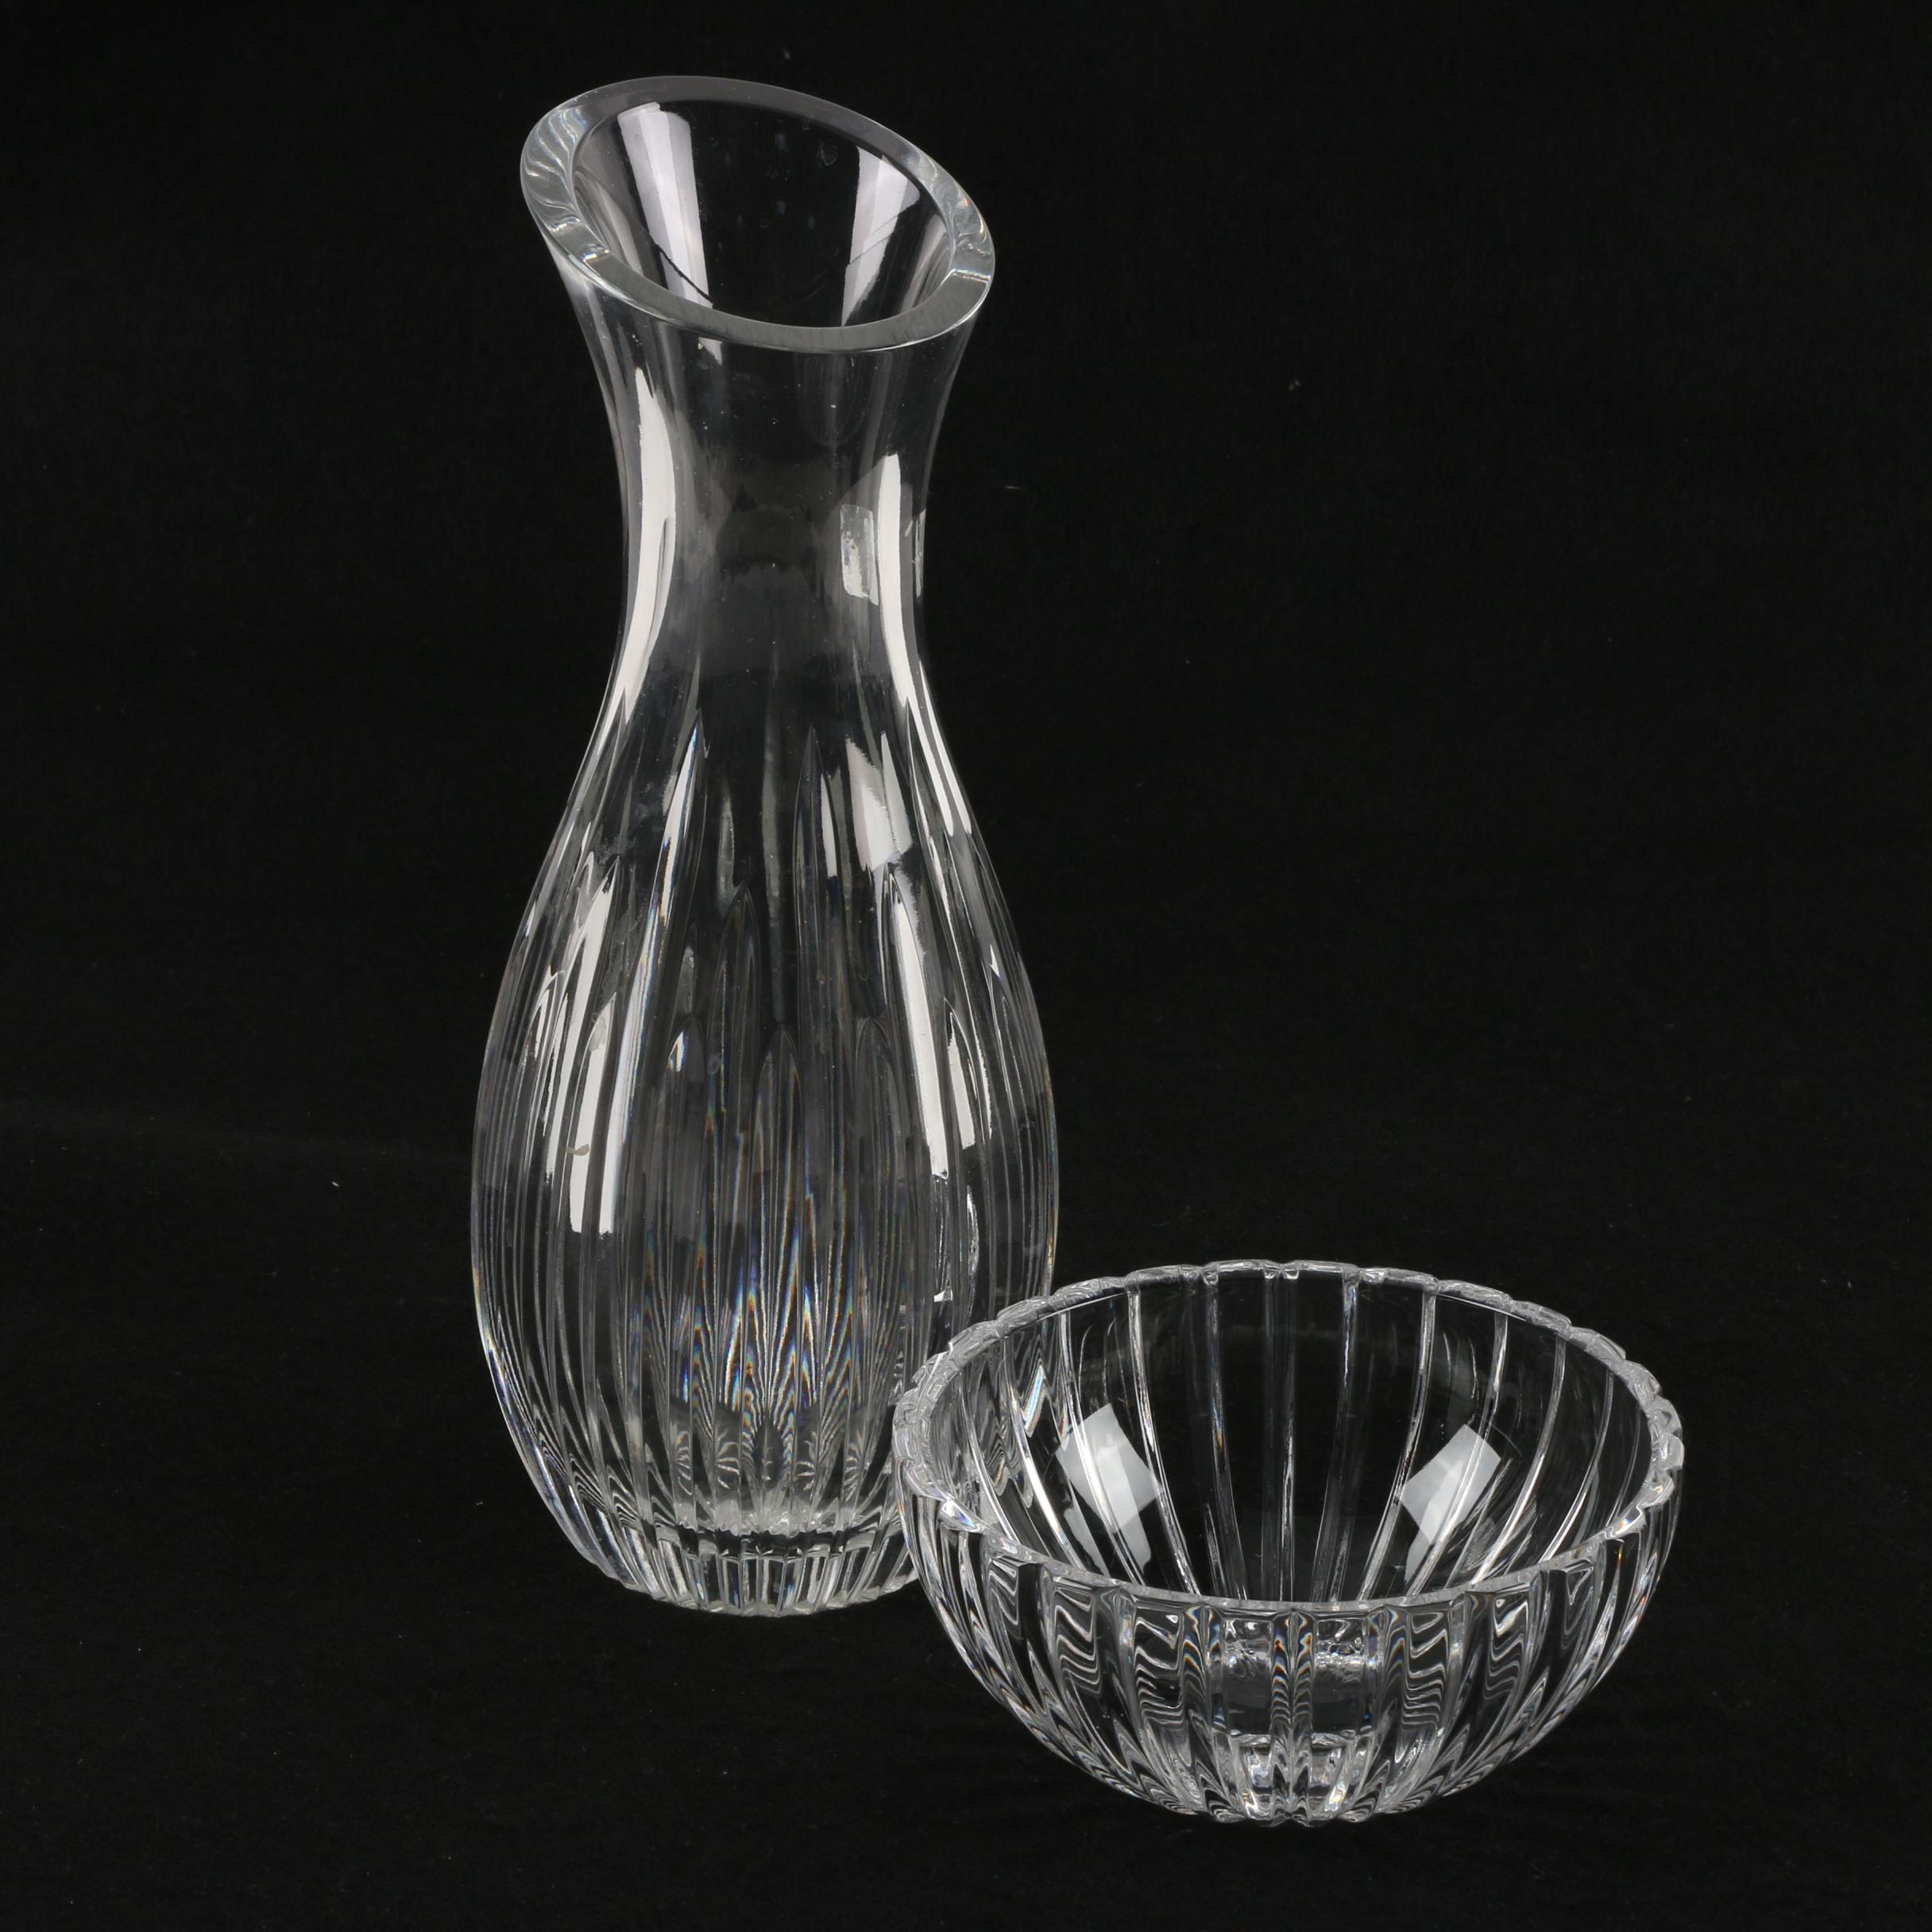 Marquis by Waterford Crystal Vase and Bowl